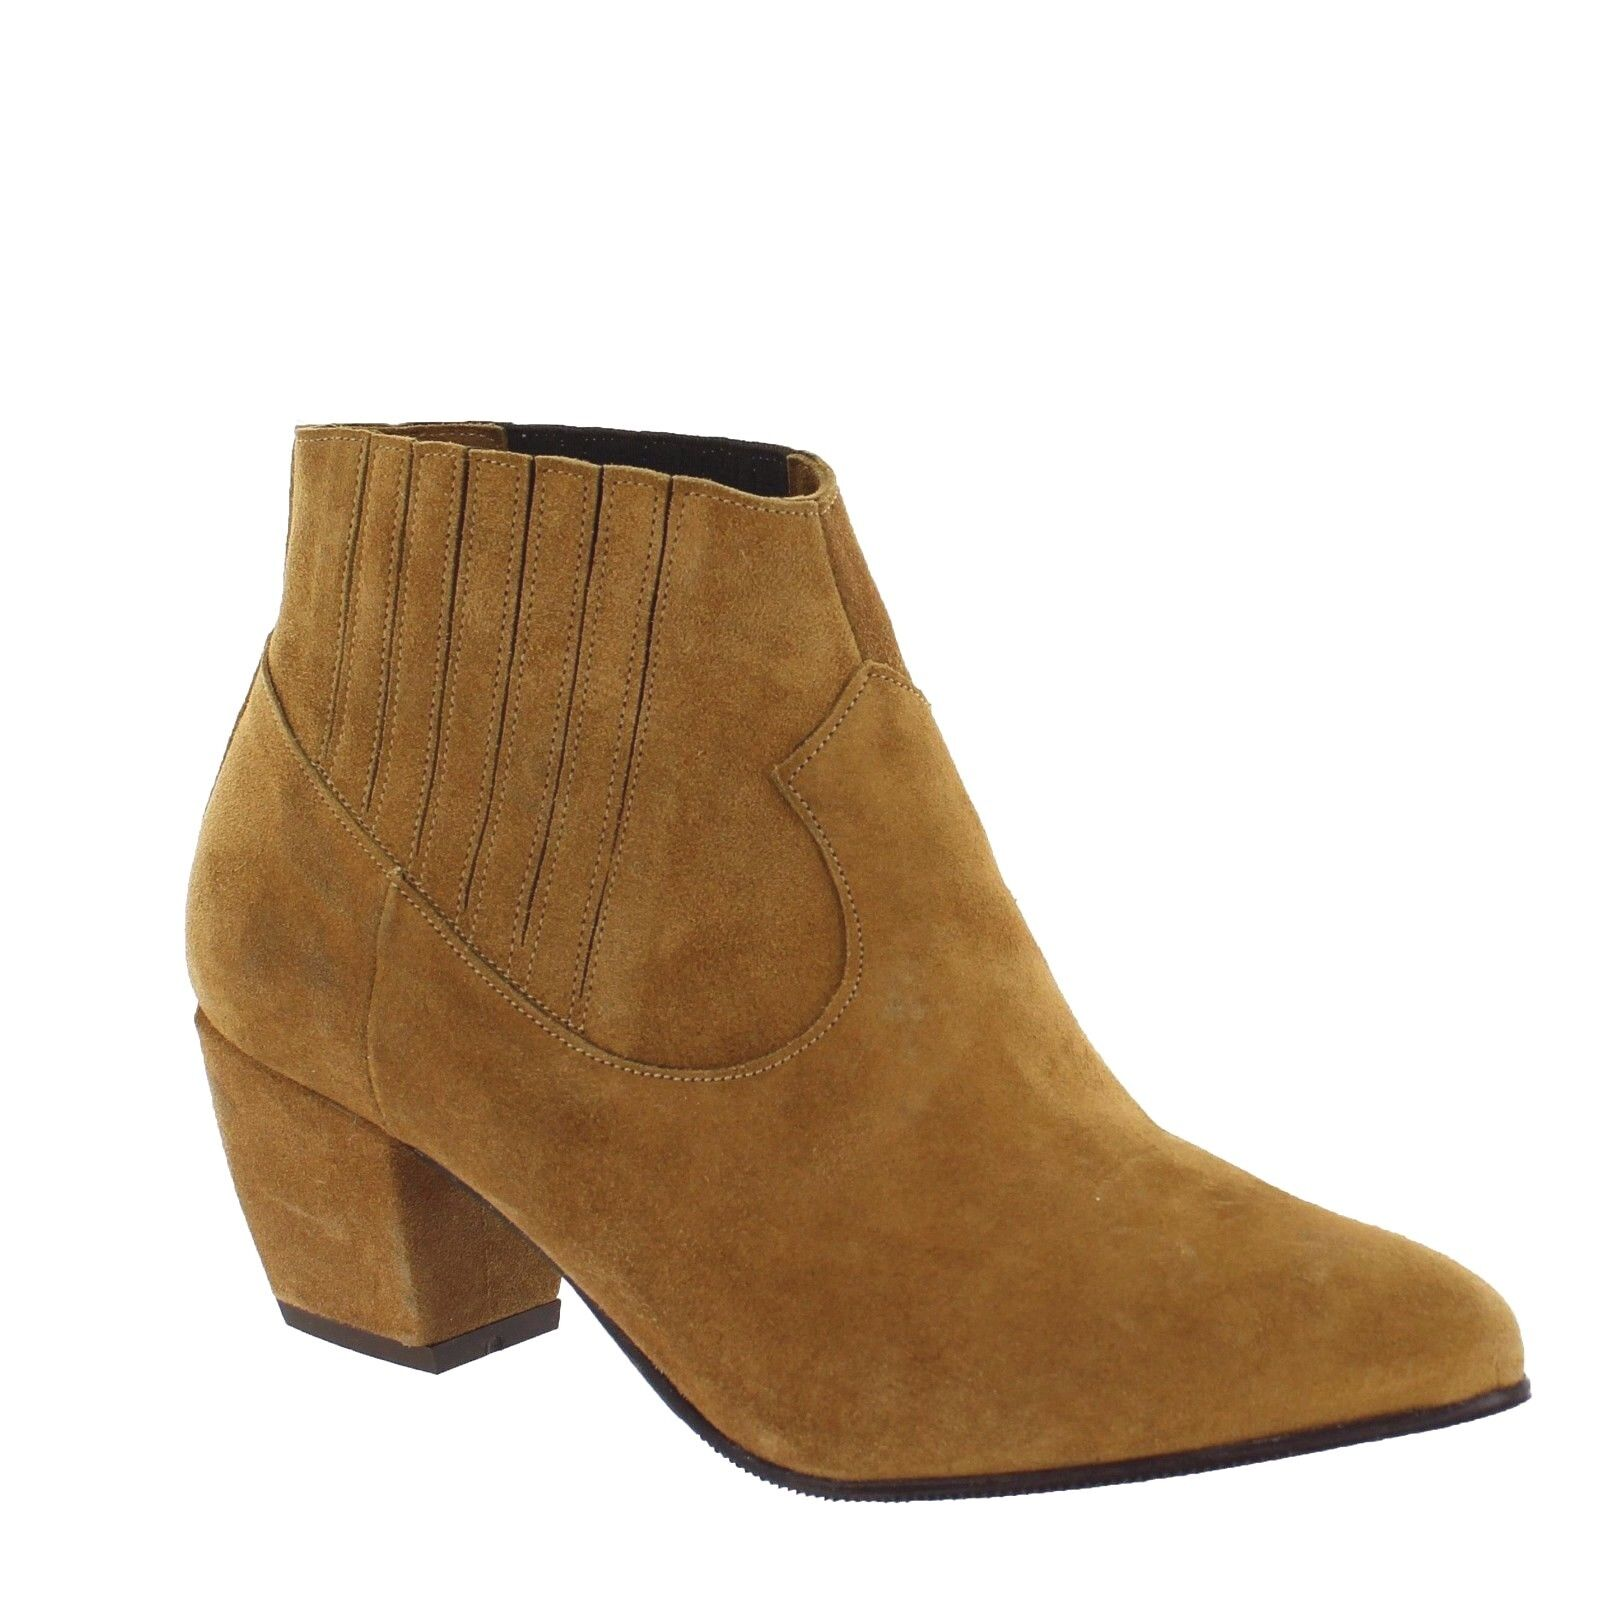 Marta Jonsson Womens UK 5 EU 38 Tan Suede Pull On Mid Heel Ankle Boots MJ2136